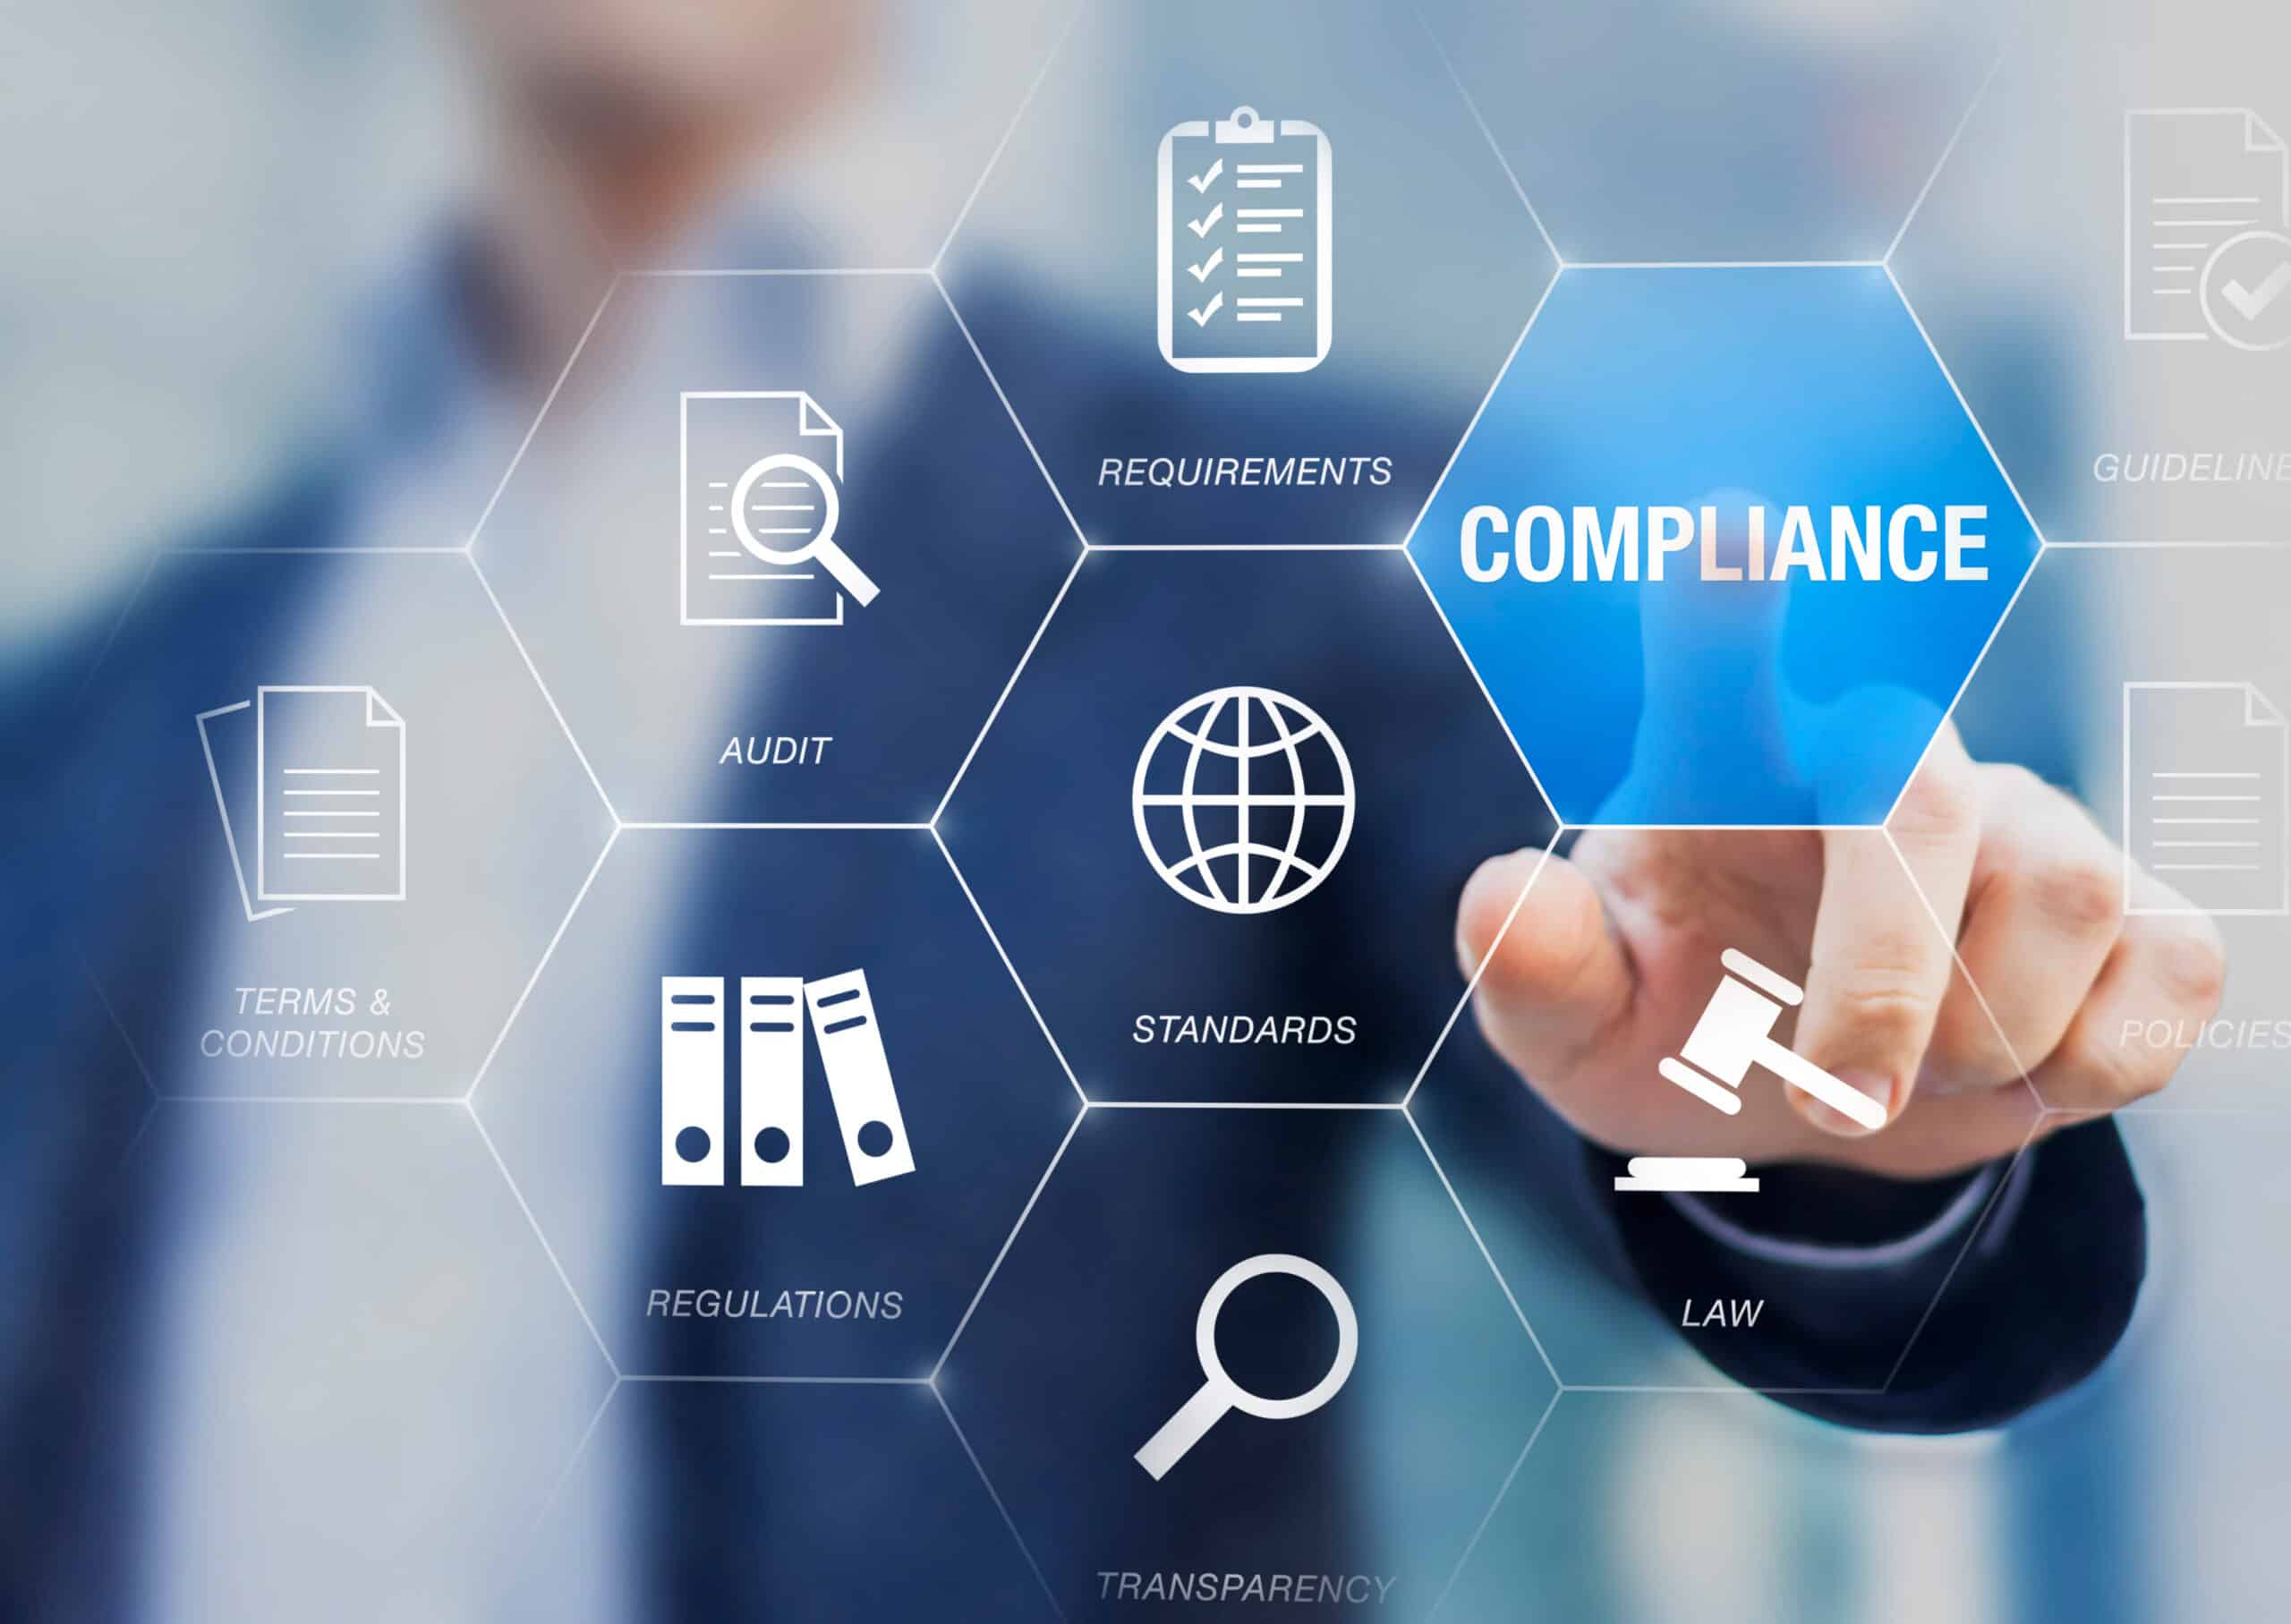 Compliance,To,Standards,,Regulations,,And,Requirements,To,Pass,Audit,And